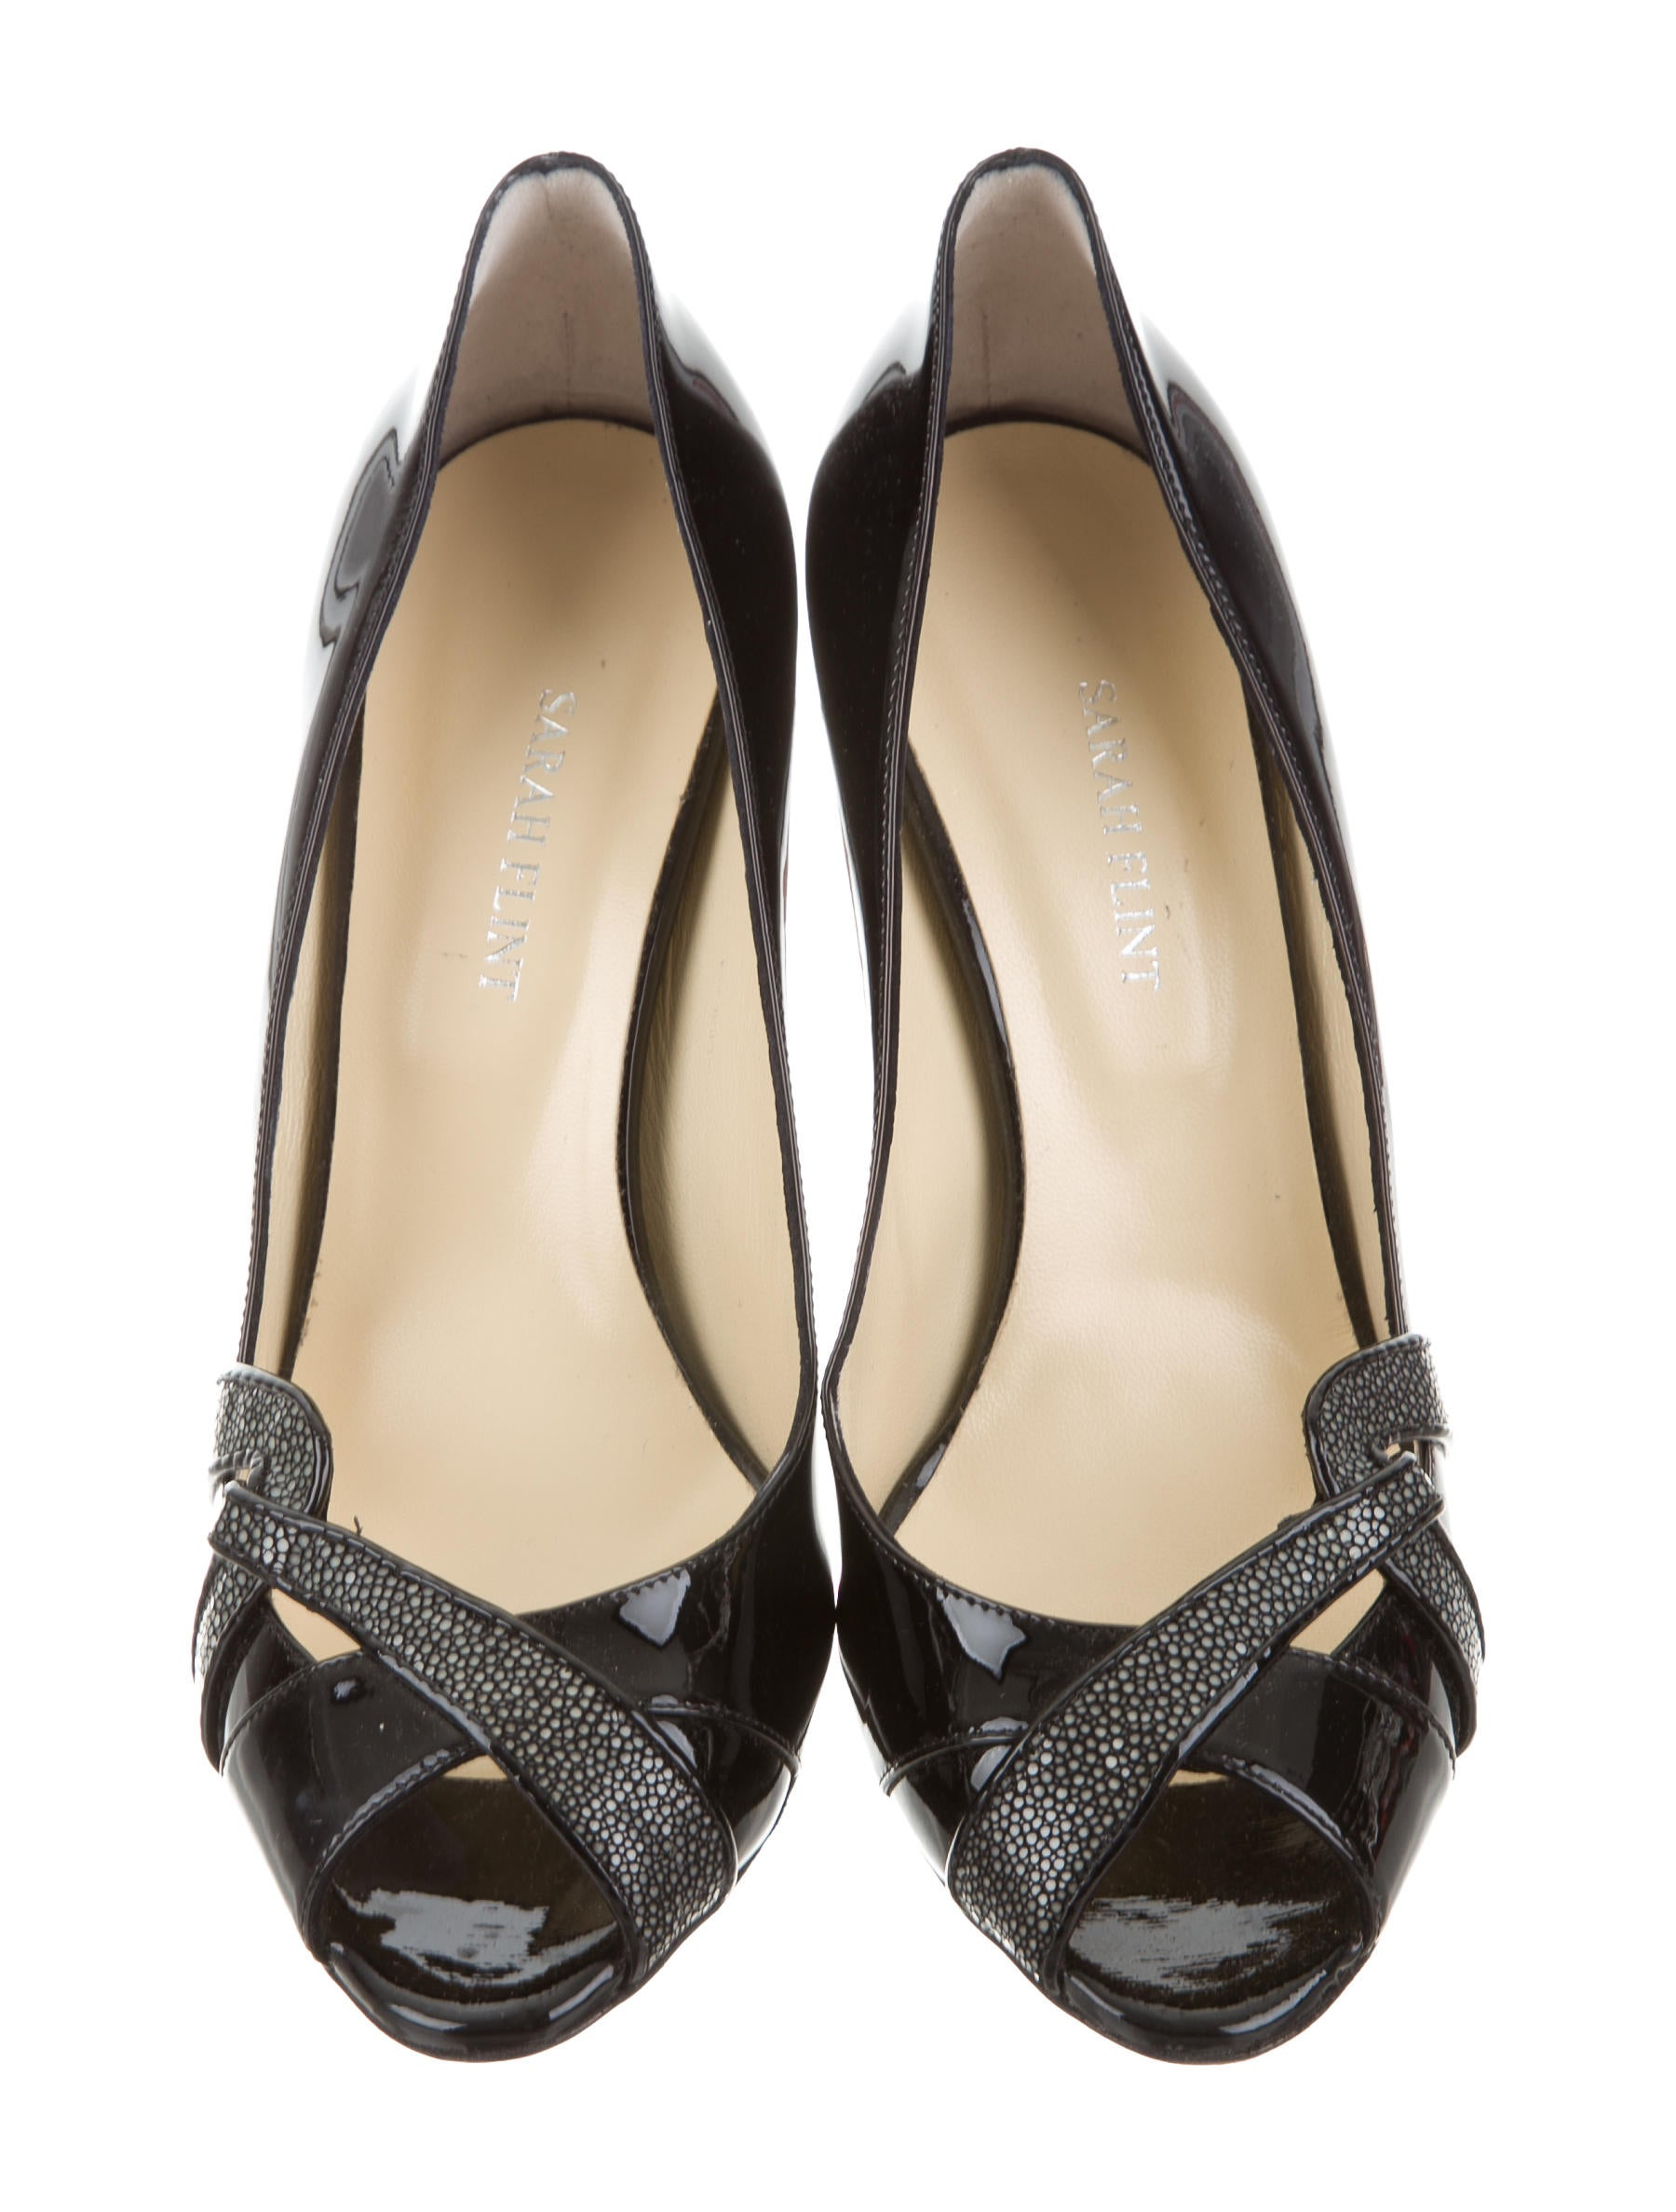 Sarah Flint Stingray-Trimmed Peep-Toe Pumps w/ Tags cheap how much uITOfteCaH